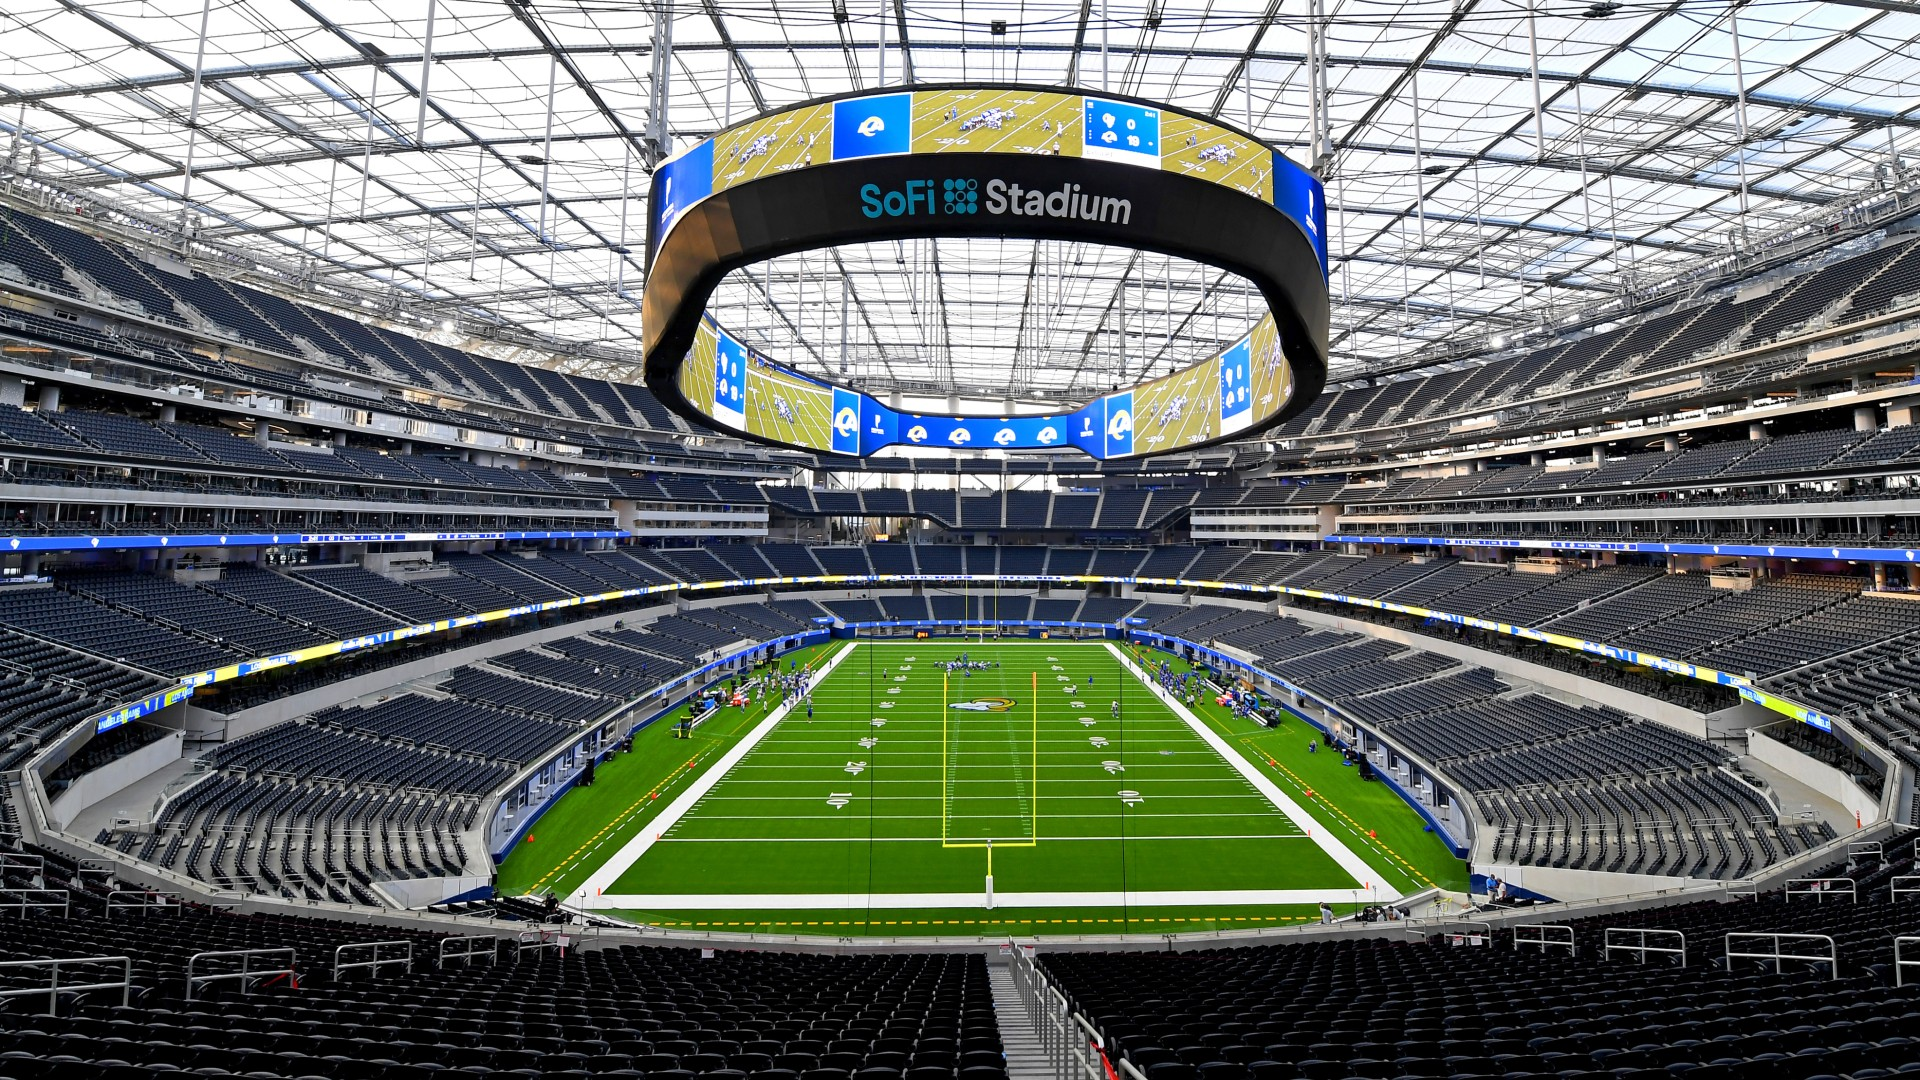 When is Super Bowl 2022? Date, location, odds, halftime show for Super Bowl 56